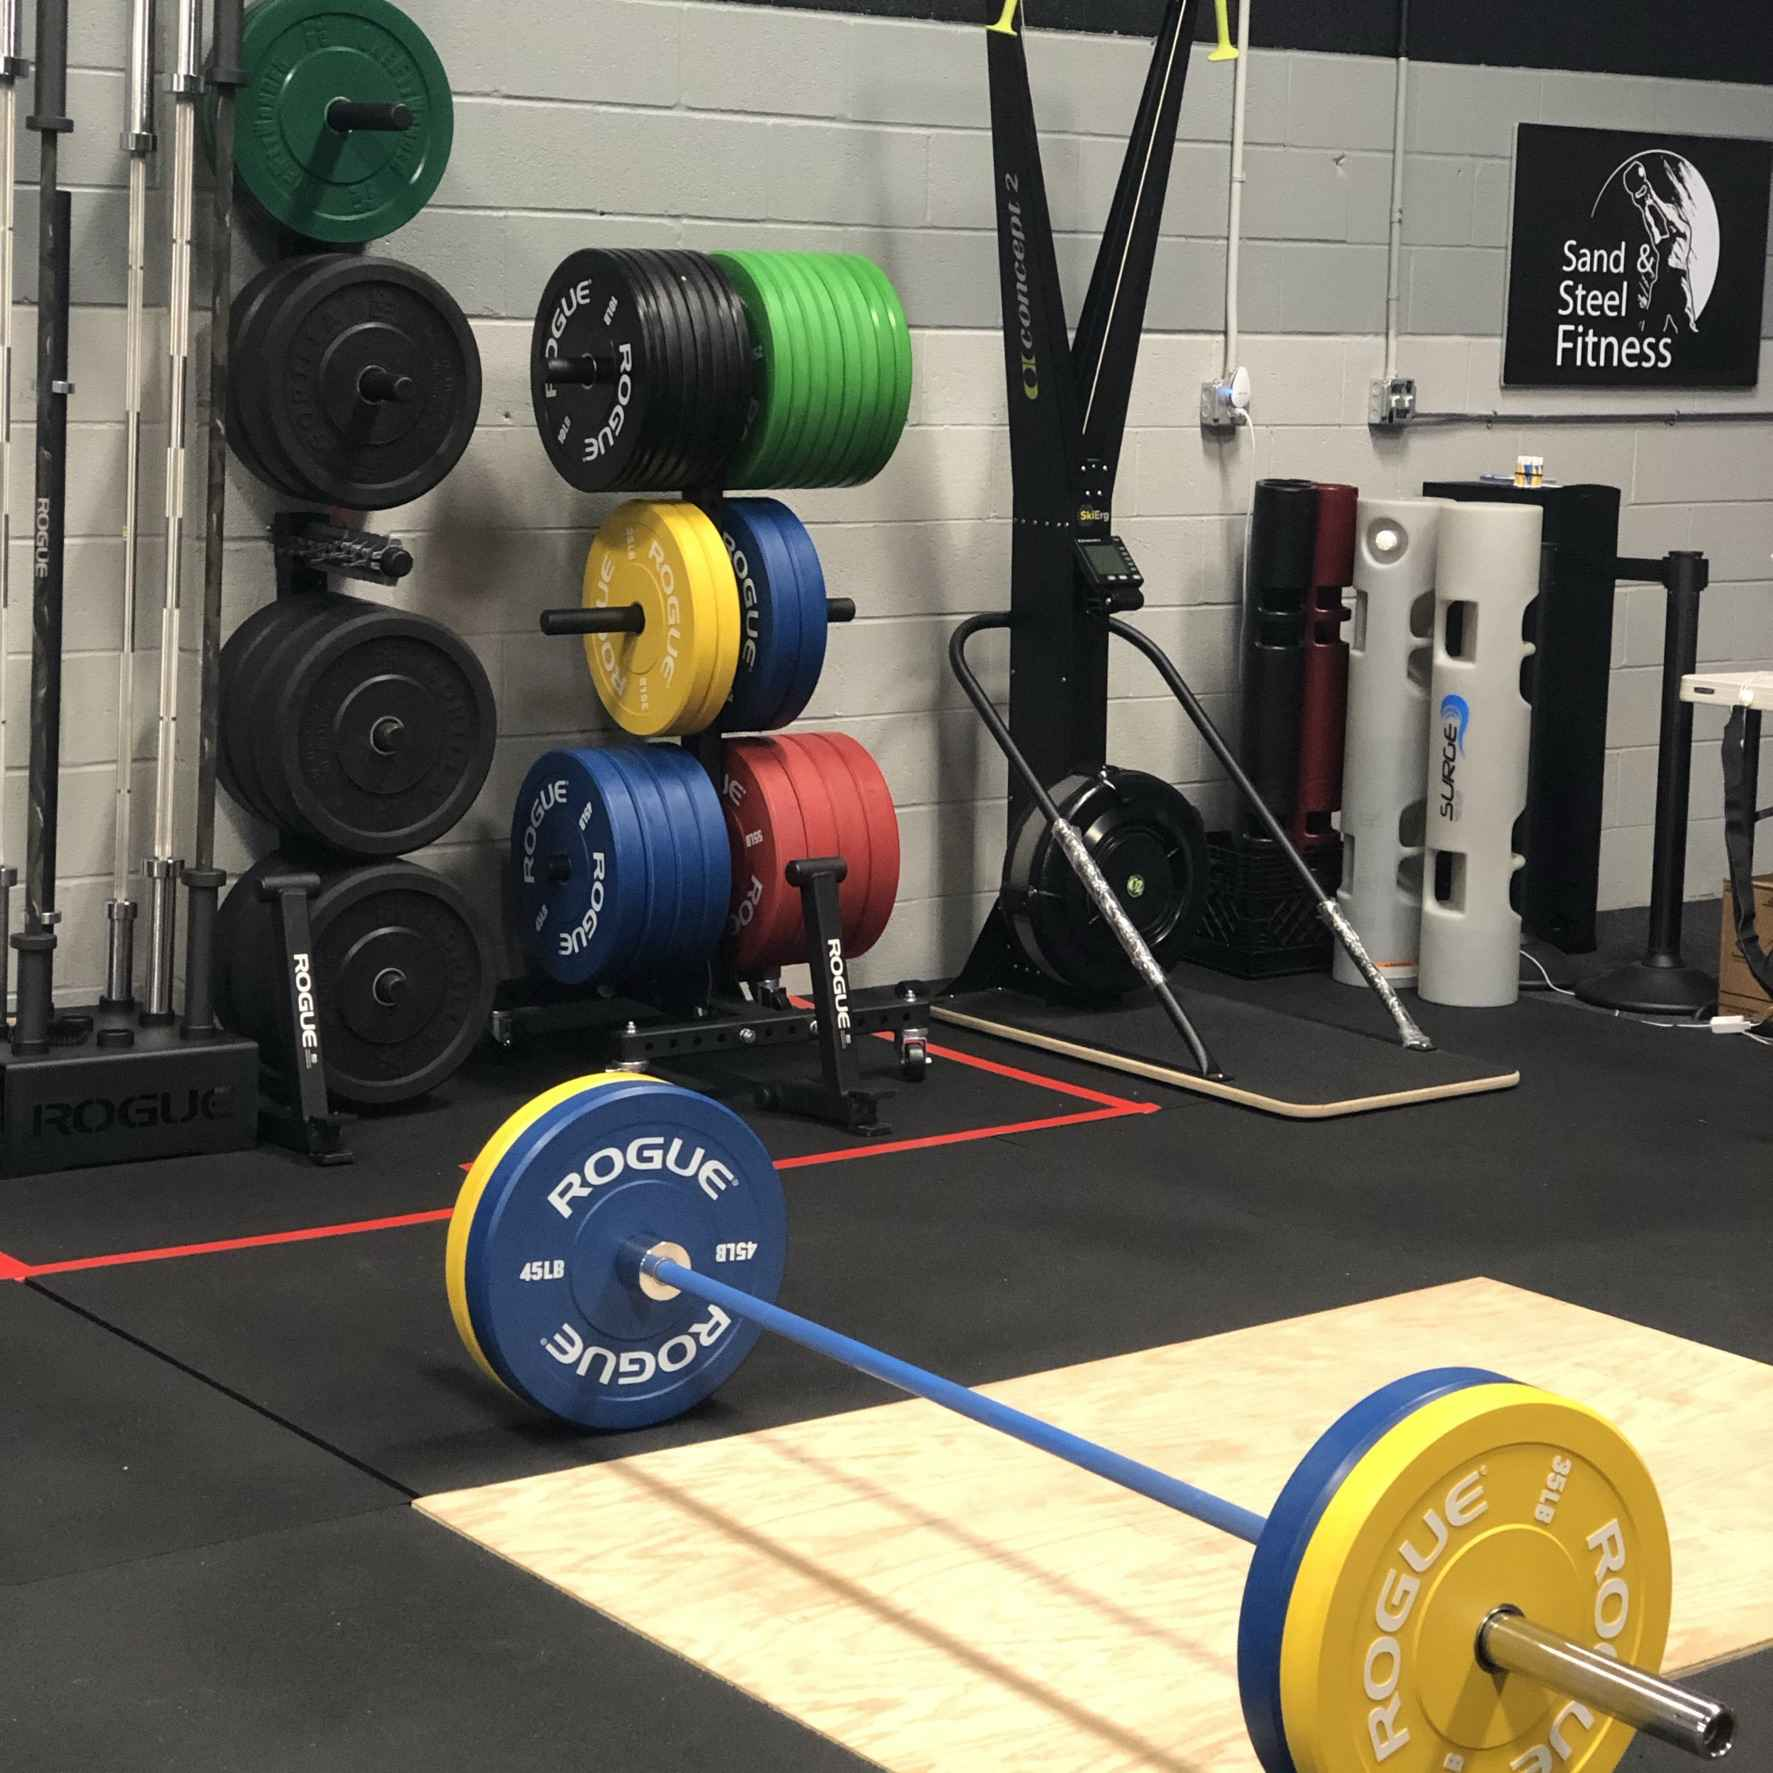 Barbell Club By Sand and Steel Fitness Opt